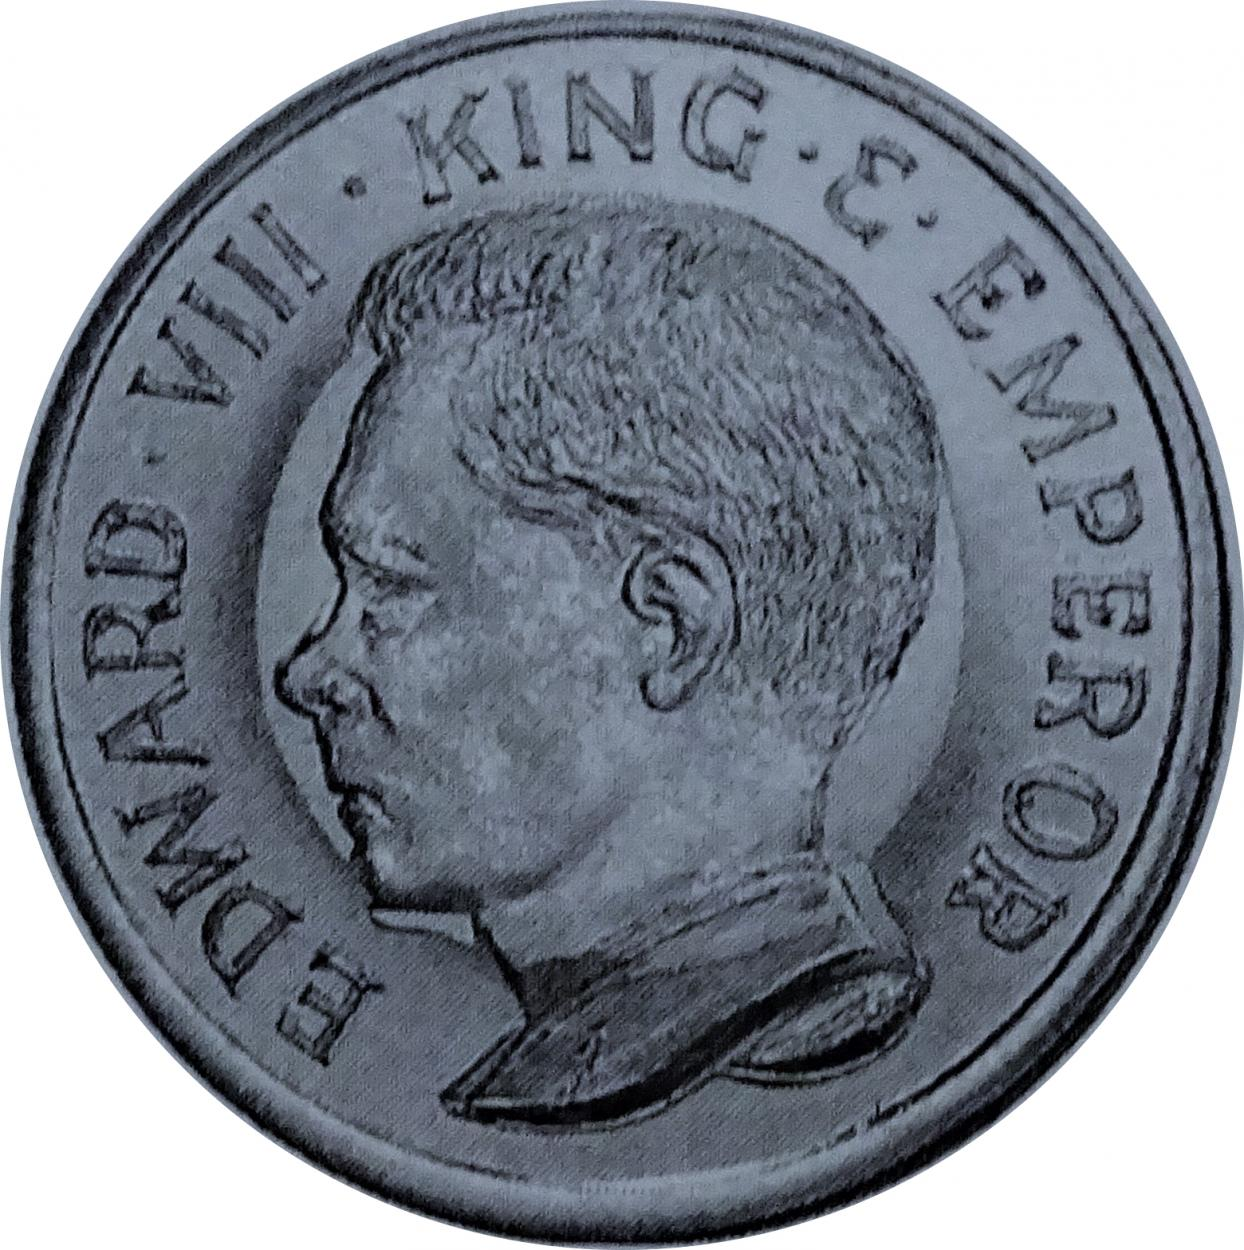 Coins and Medals of Edward VIII - King Edward VIII Medals